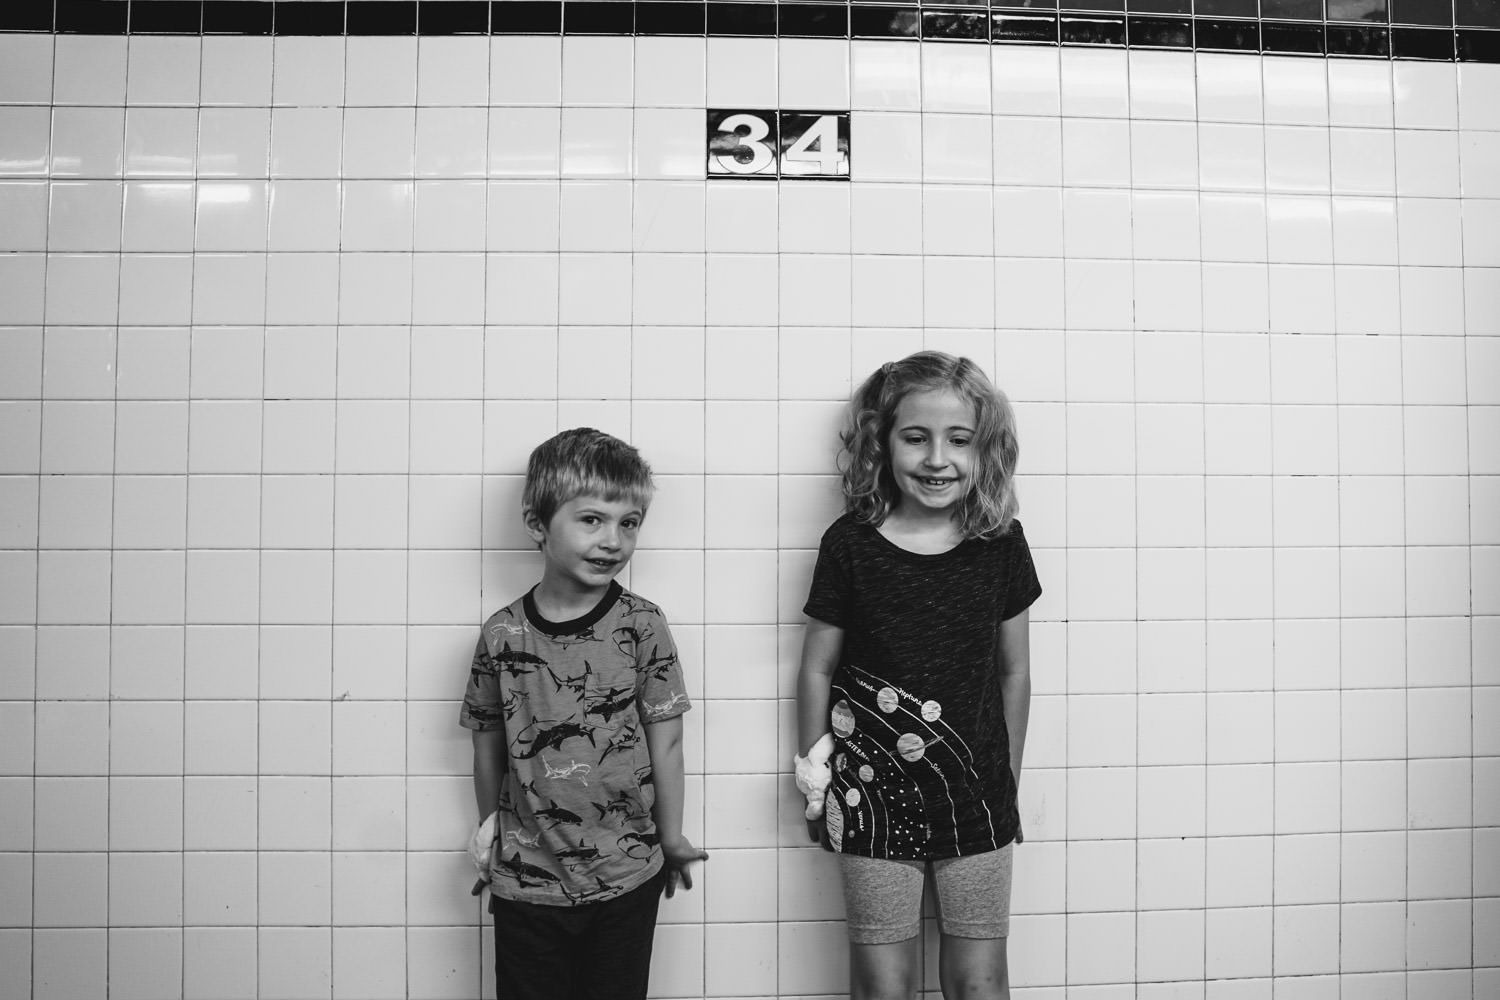 Two children stand on the subway platform.